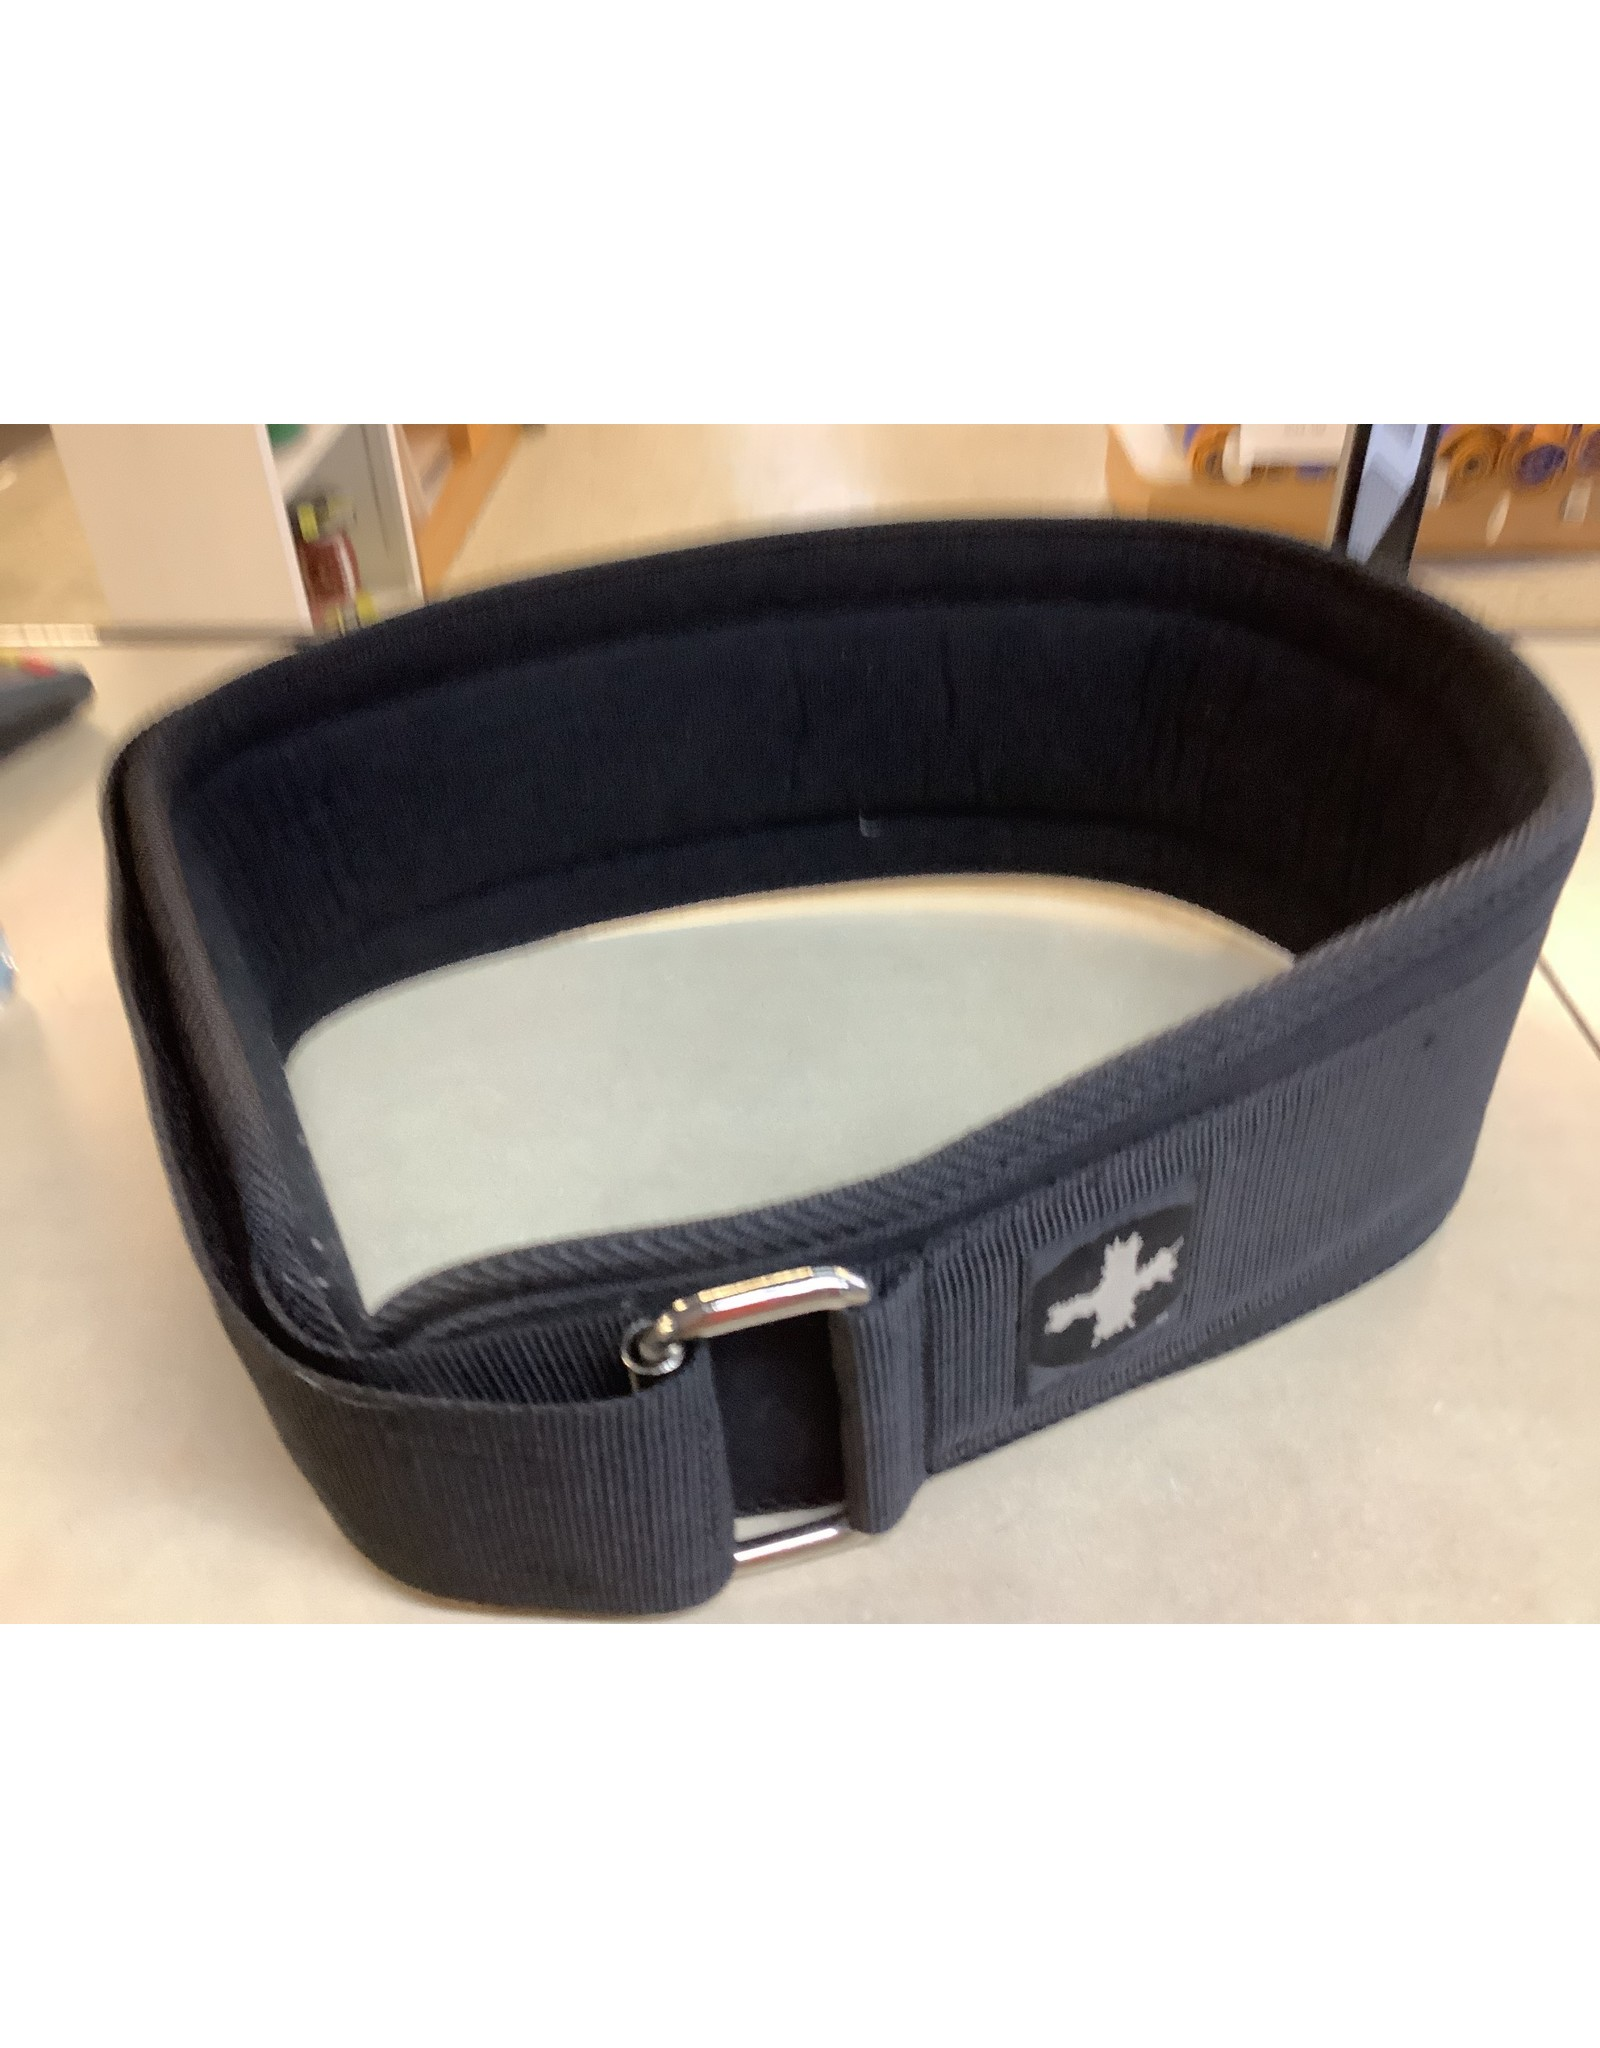 """Harbinger Copy of Classic 5"""" Firm Lifting Belt Size Small"""